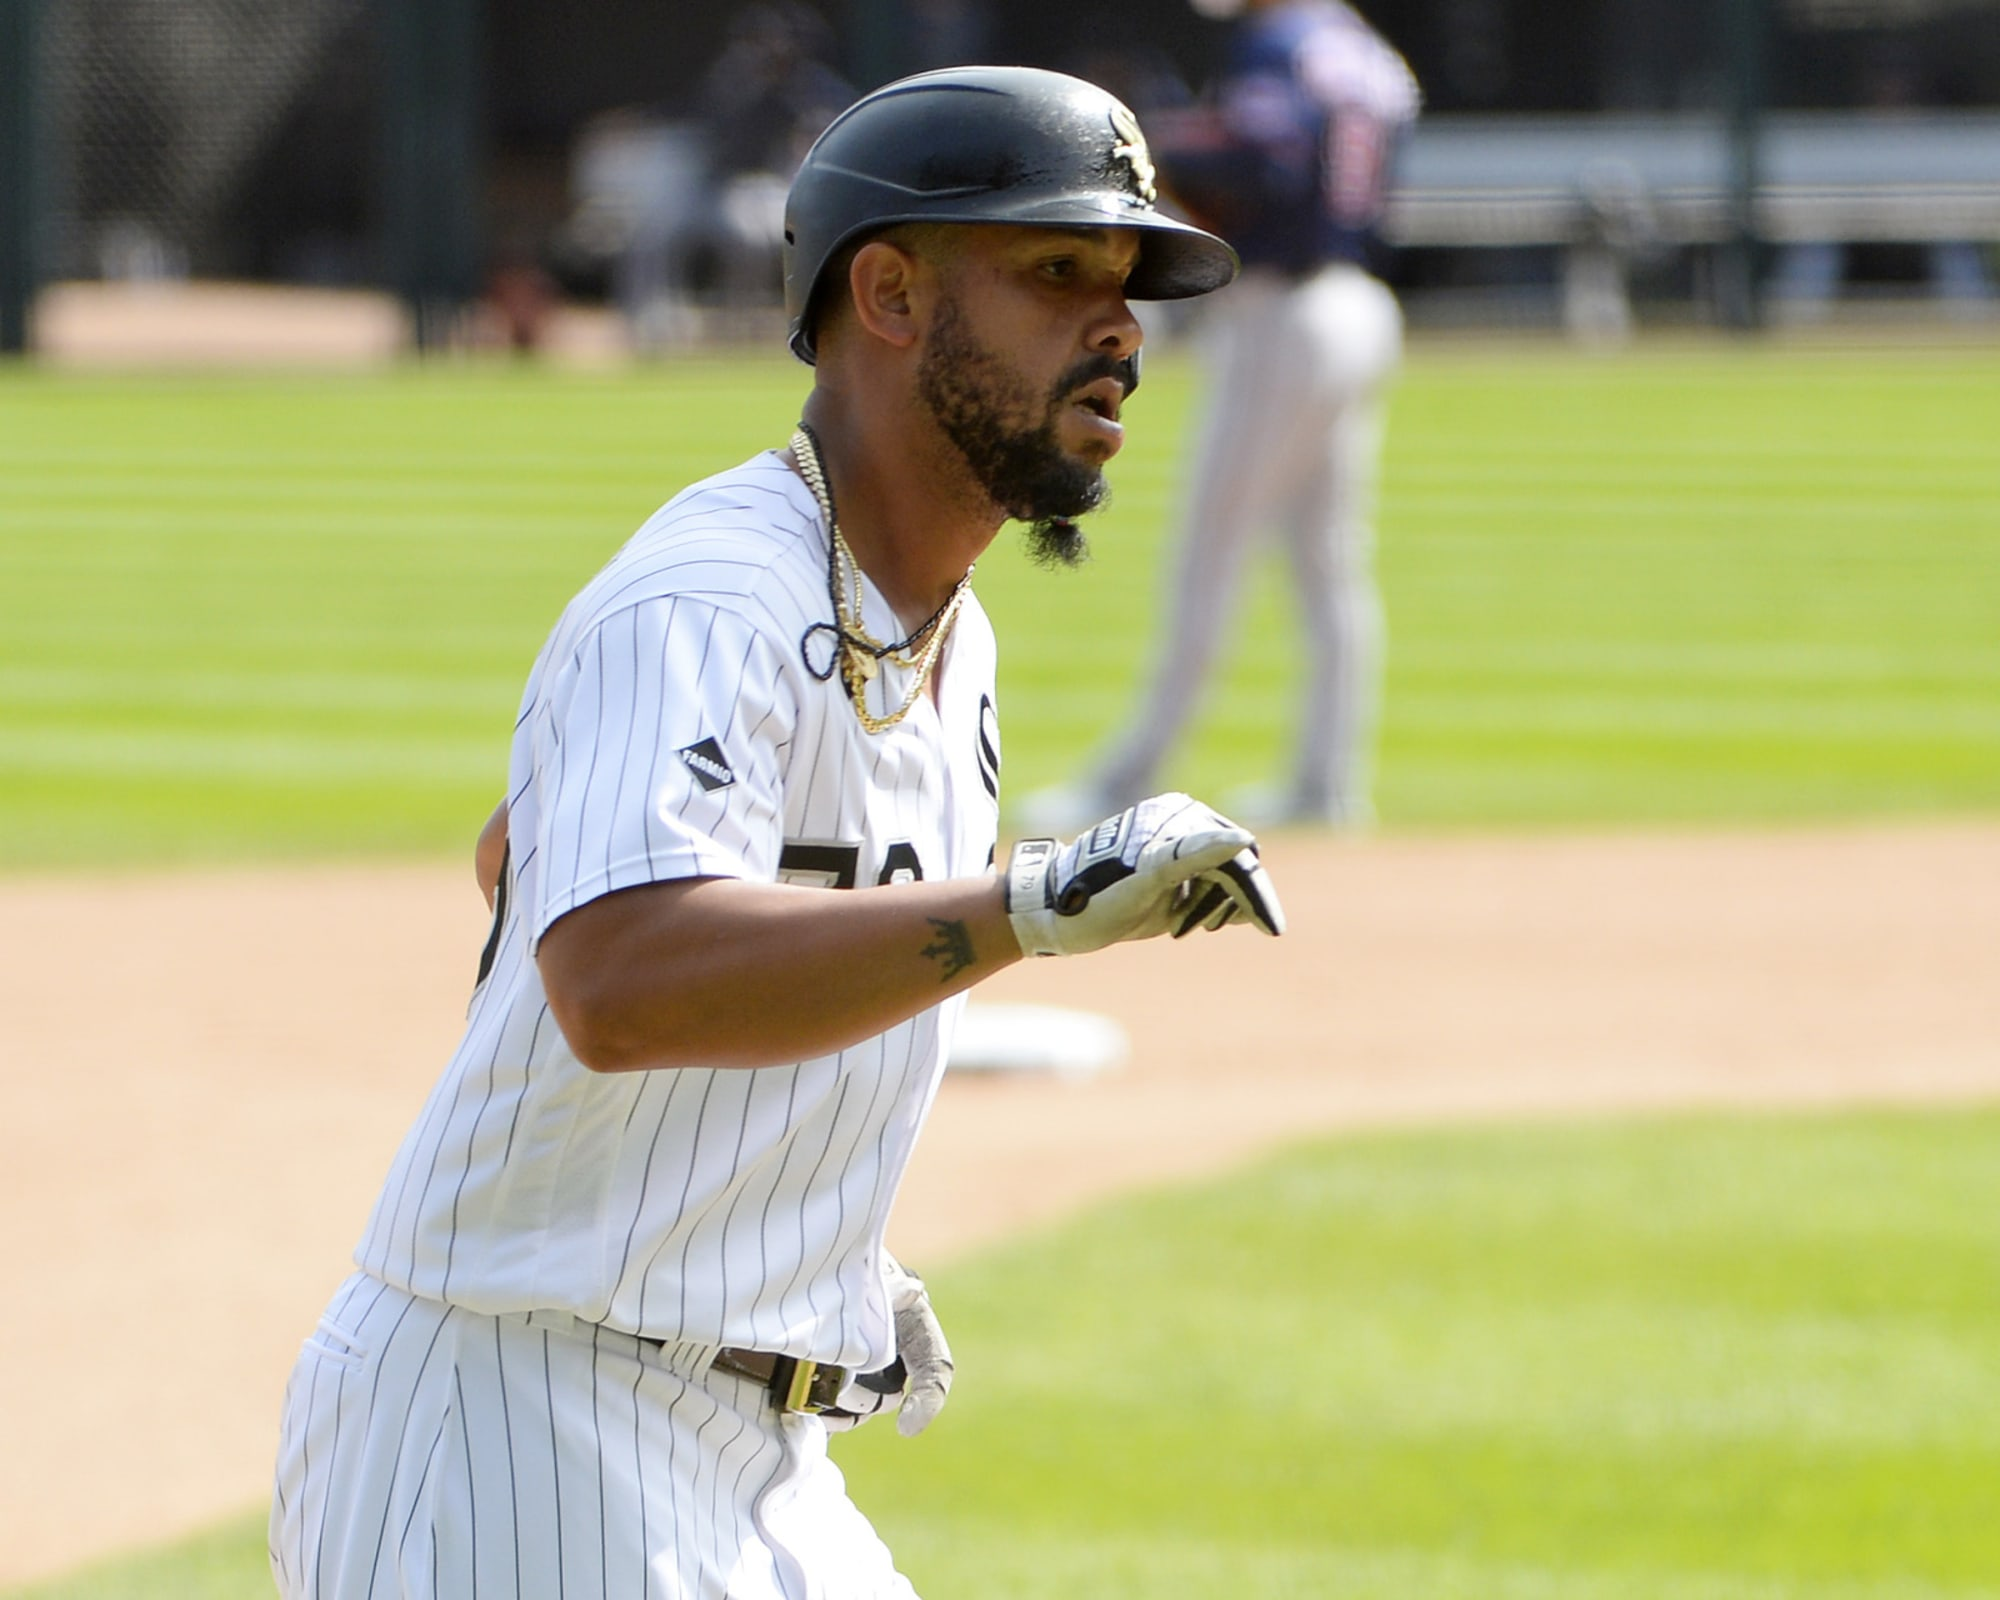 Chicago White Sox: Jose Abreu reaches the Promised Land